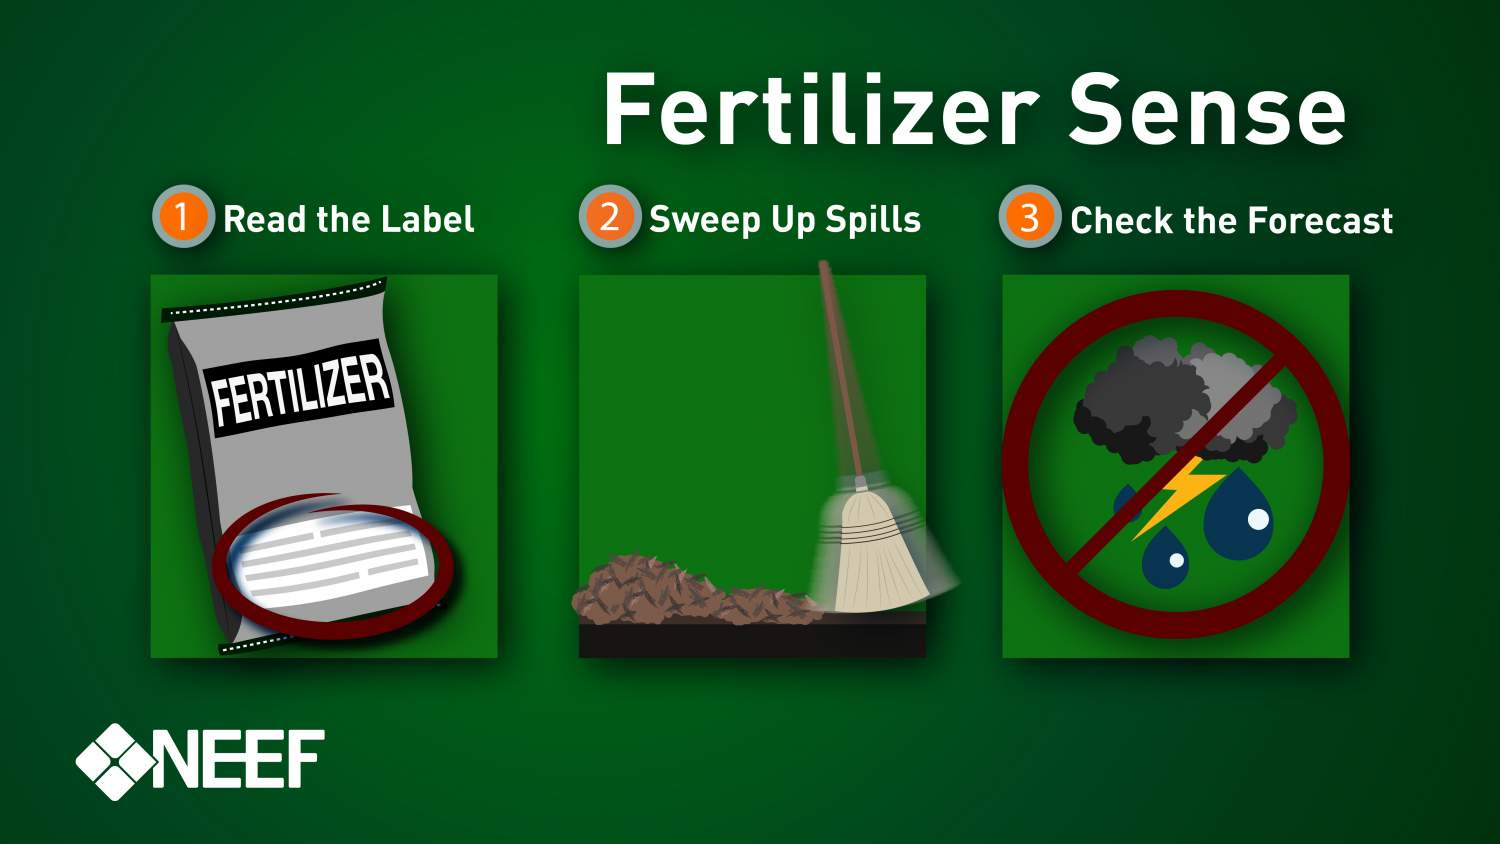 Fertilizer sense: Read the label; Sweep up spills; Check the forecast